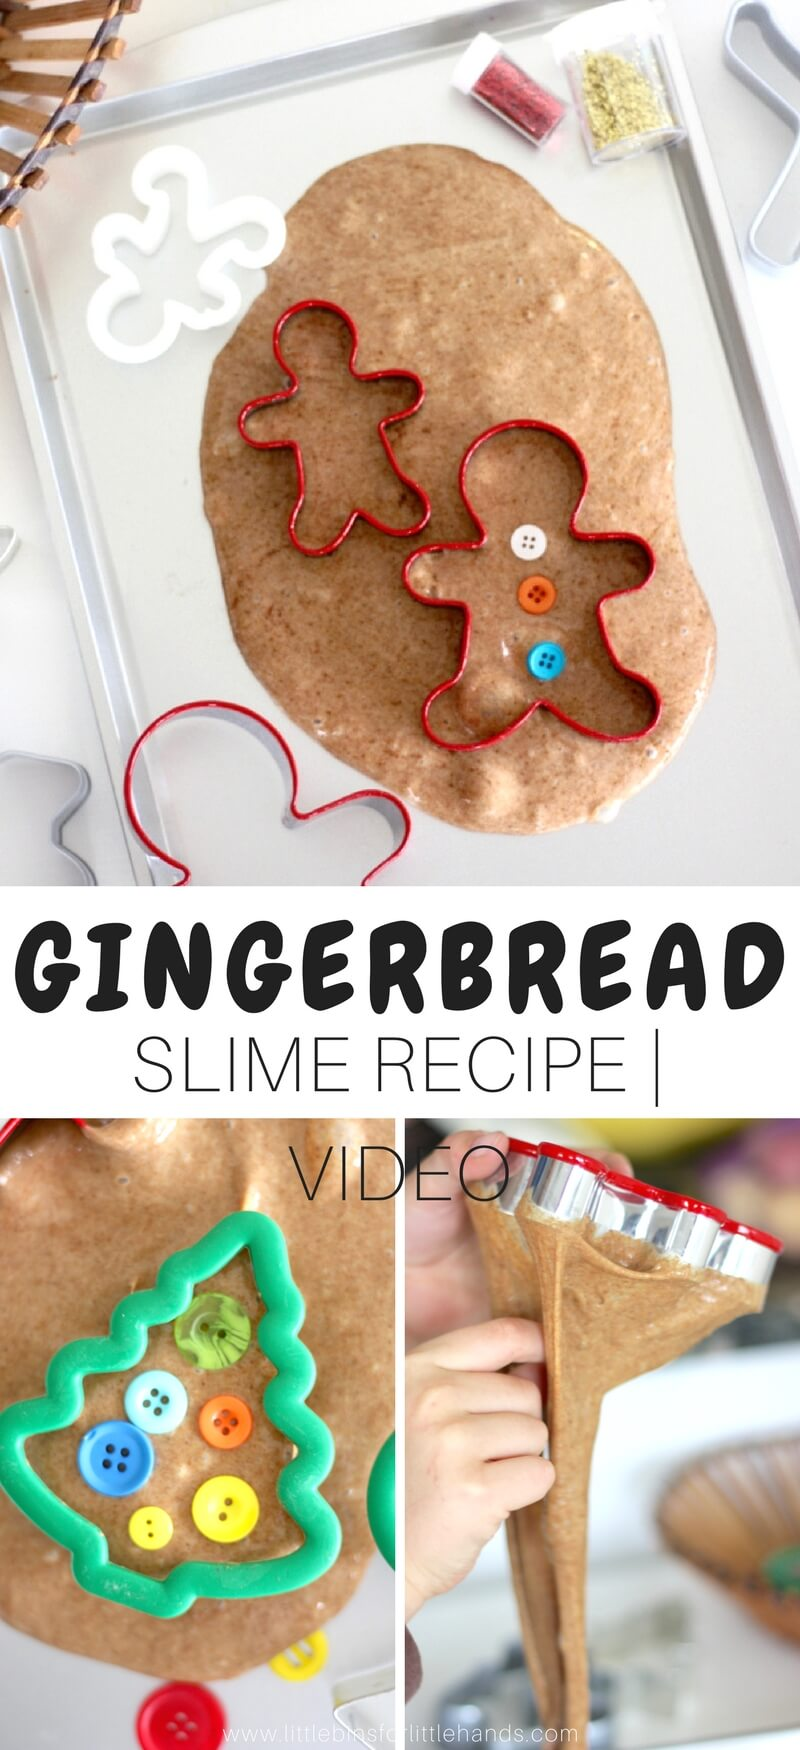 Are we baking cookies or making slime! Whether you love baking gingerbread man cookies, are planning a gingerbread theme lesson, or just love anything scented, our newest gingerbread slime is the answer. Our holidays slimes are really popular, and this year I challenged us to come up with a gingerbread man series. Enjoy the scented science and sensory play that is so easy to make with our homemade slime recipes.